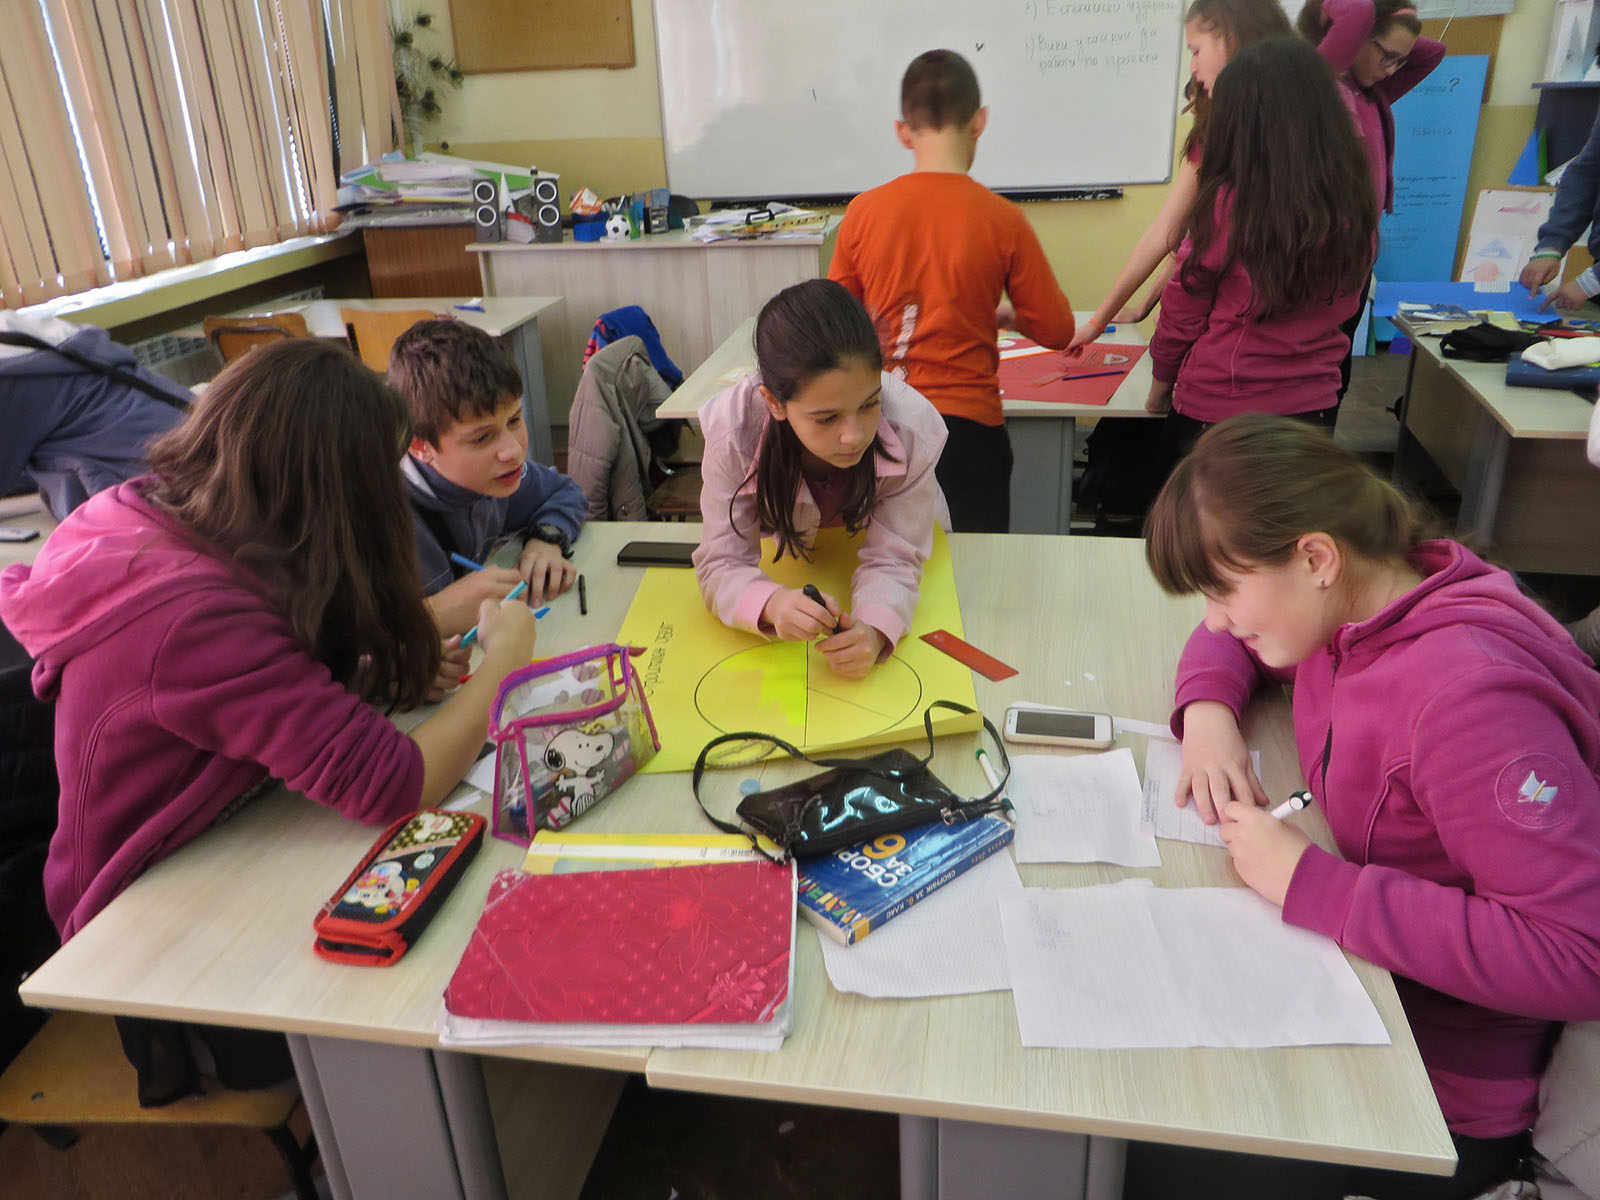 fg18-group-working-10